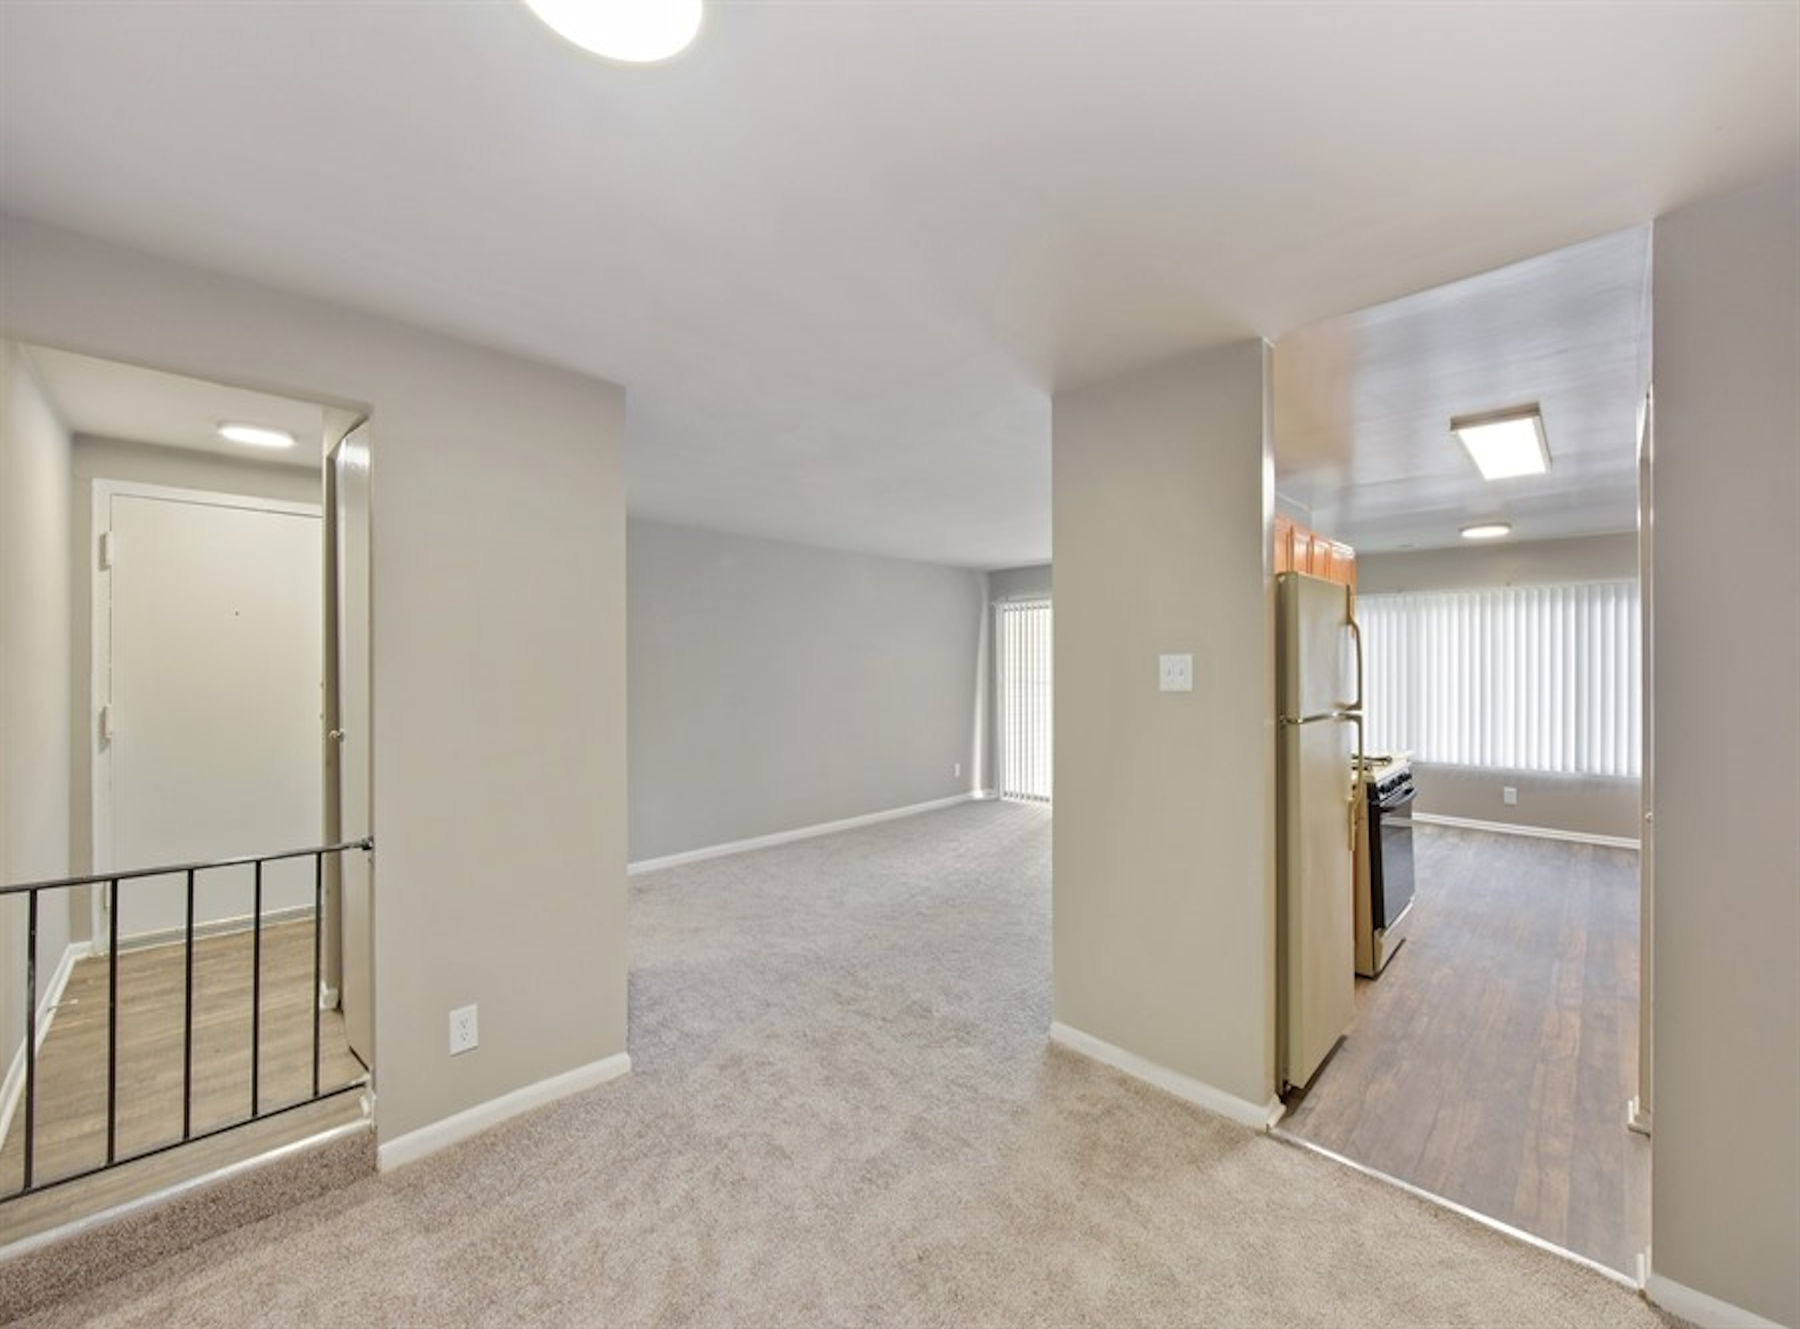 Model entry with vinyl flooring, modern paint, and carpet.